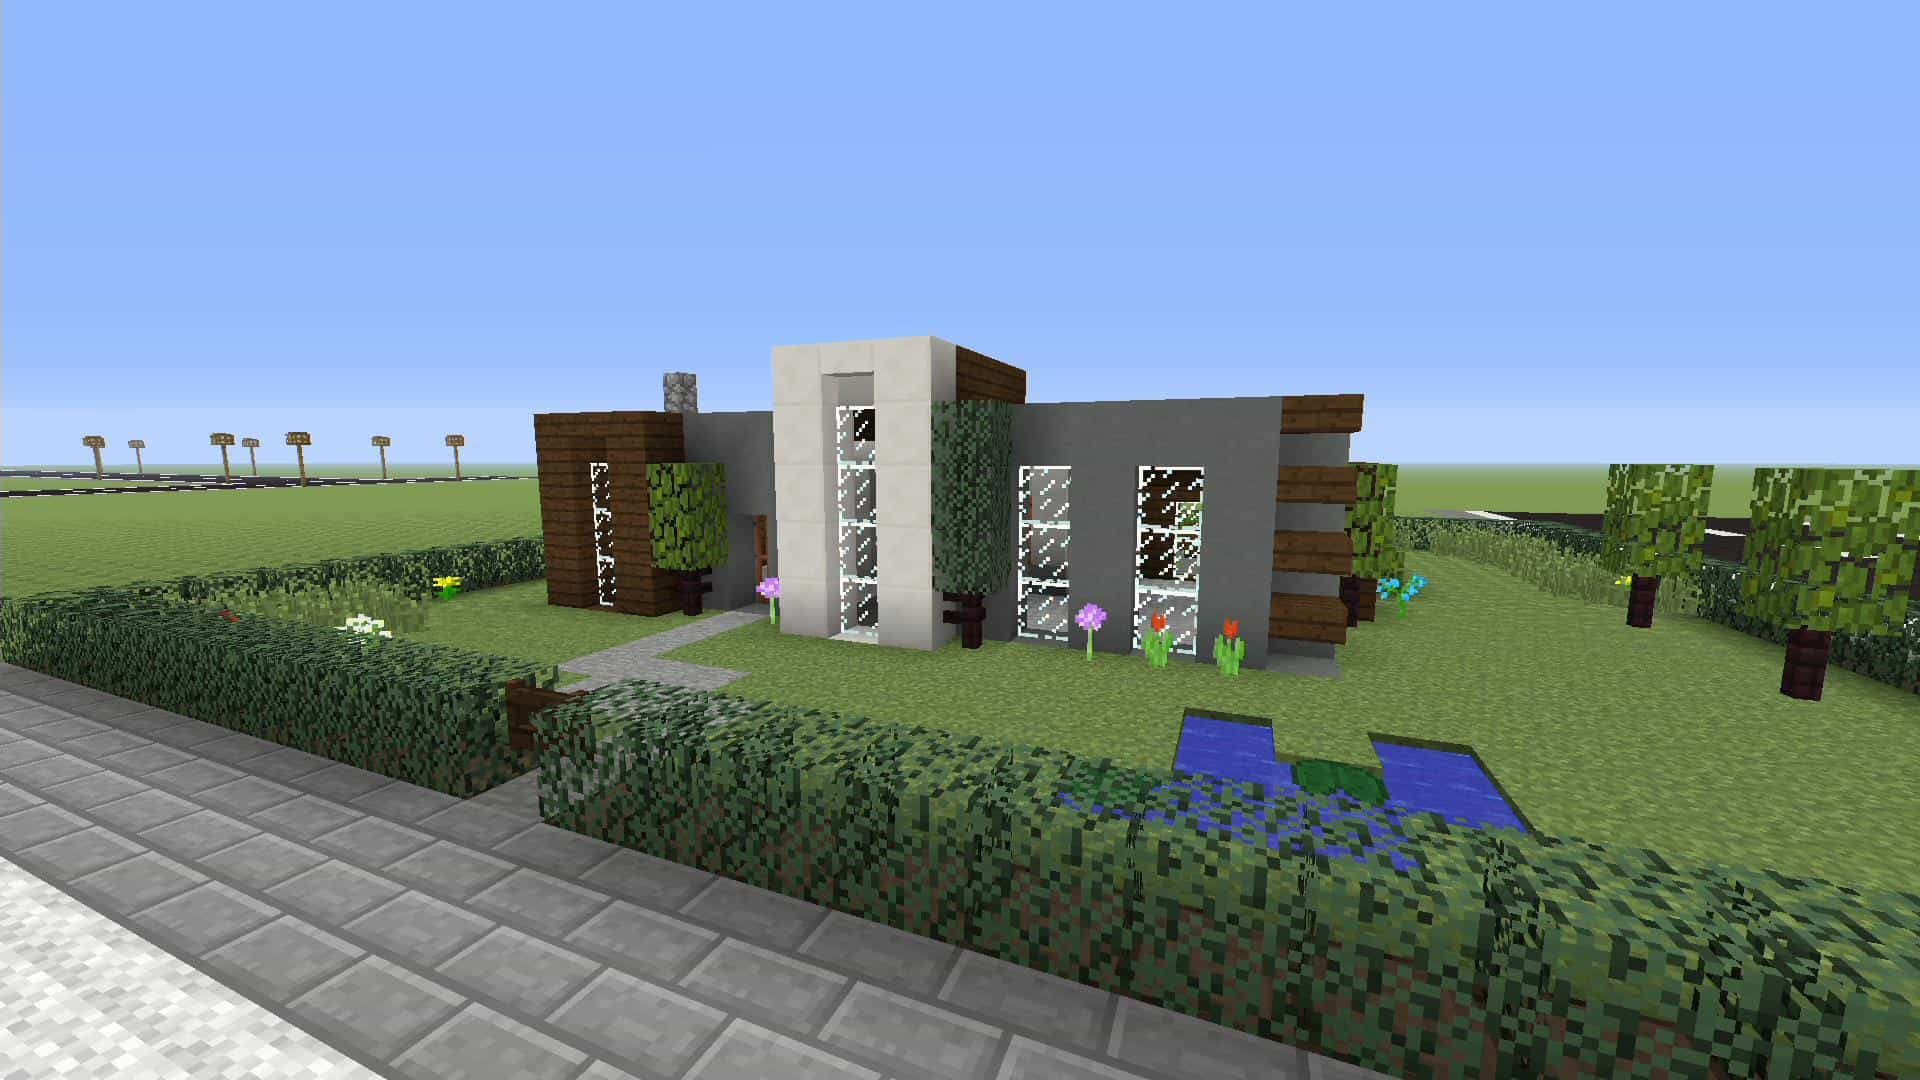 screenshots download minecraft how to make a simple modern house